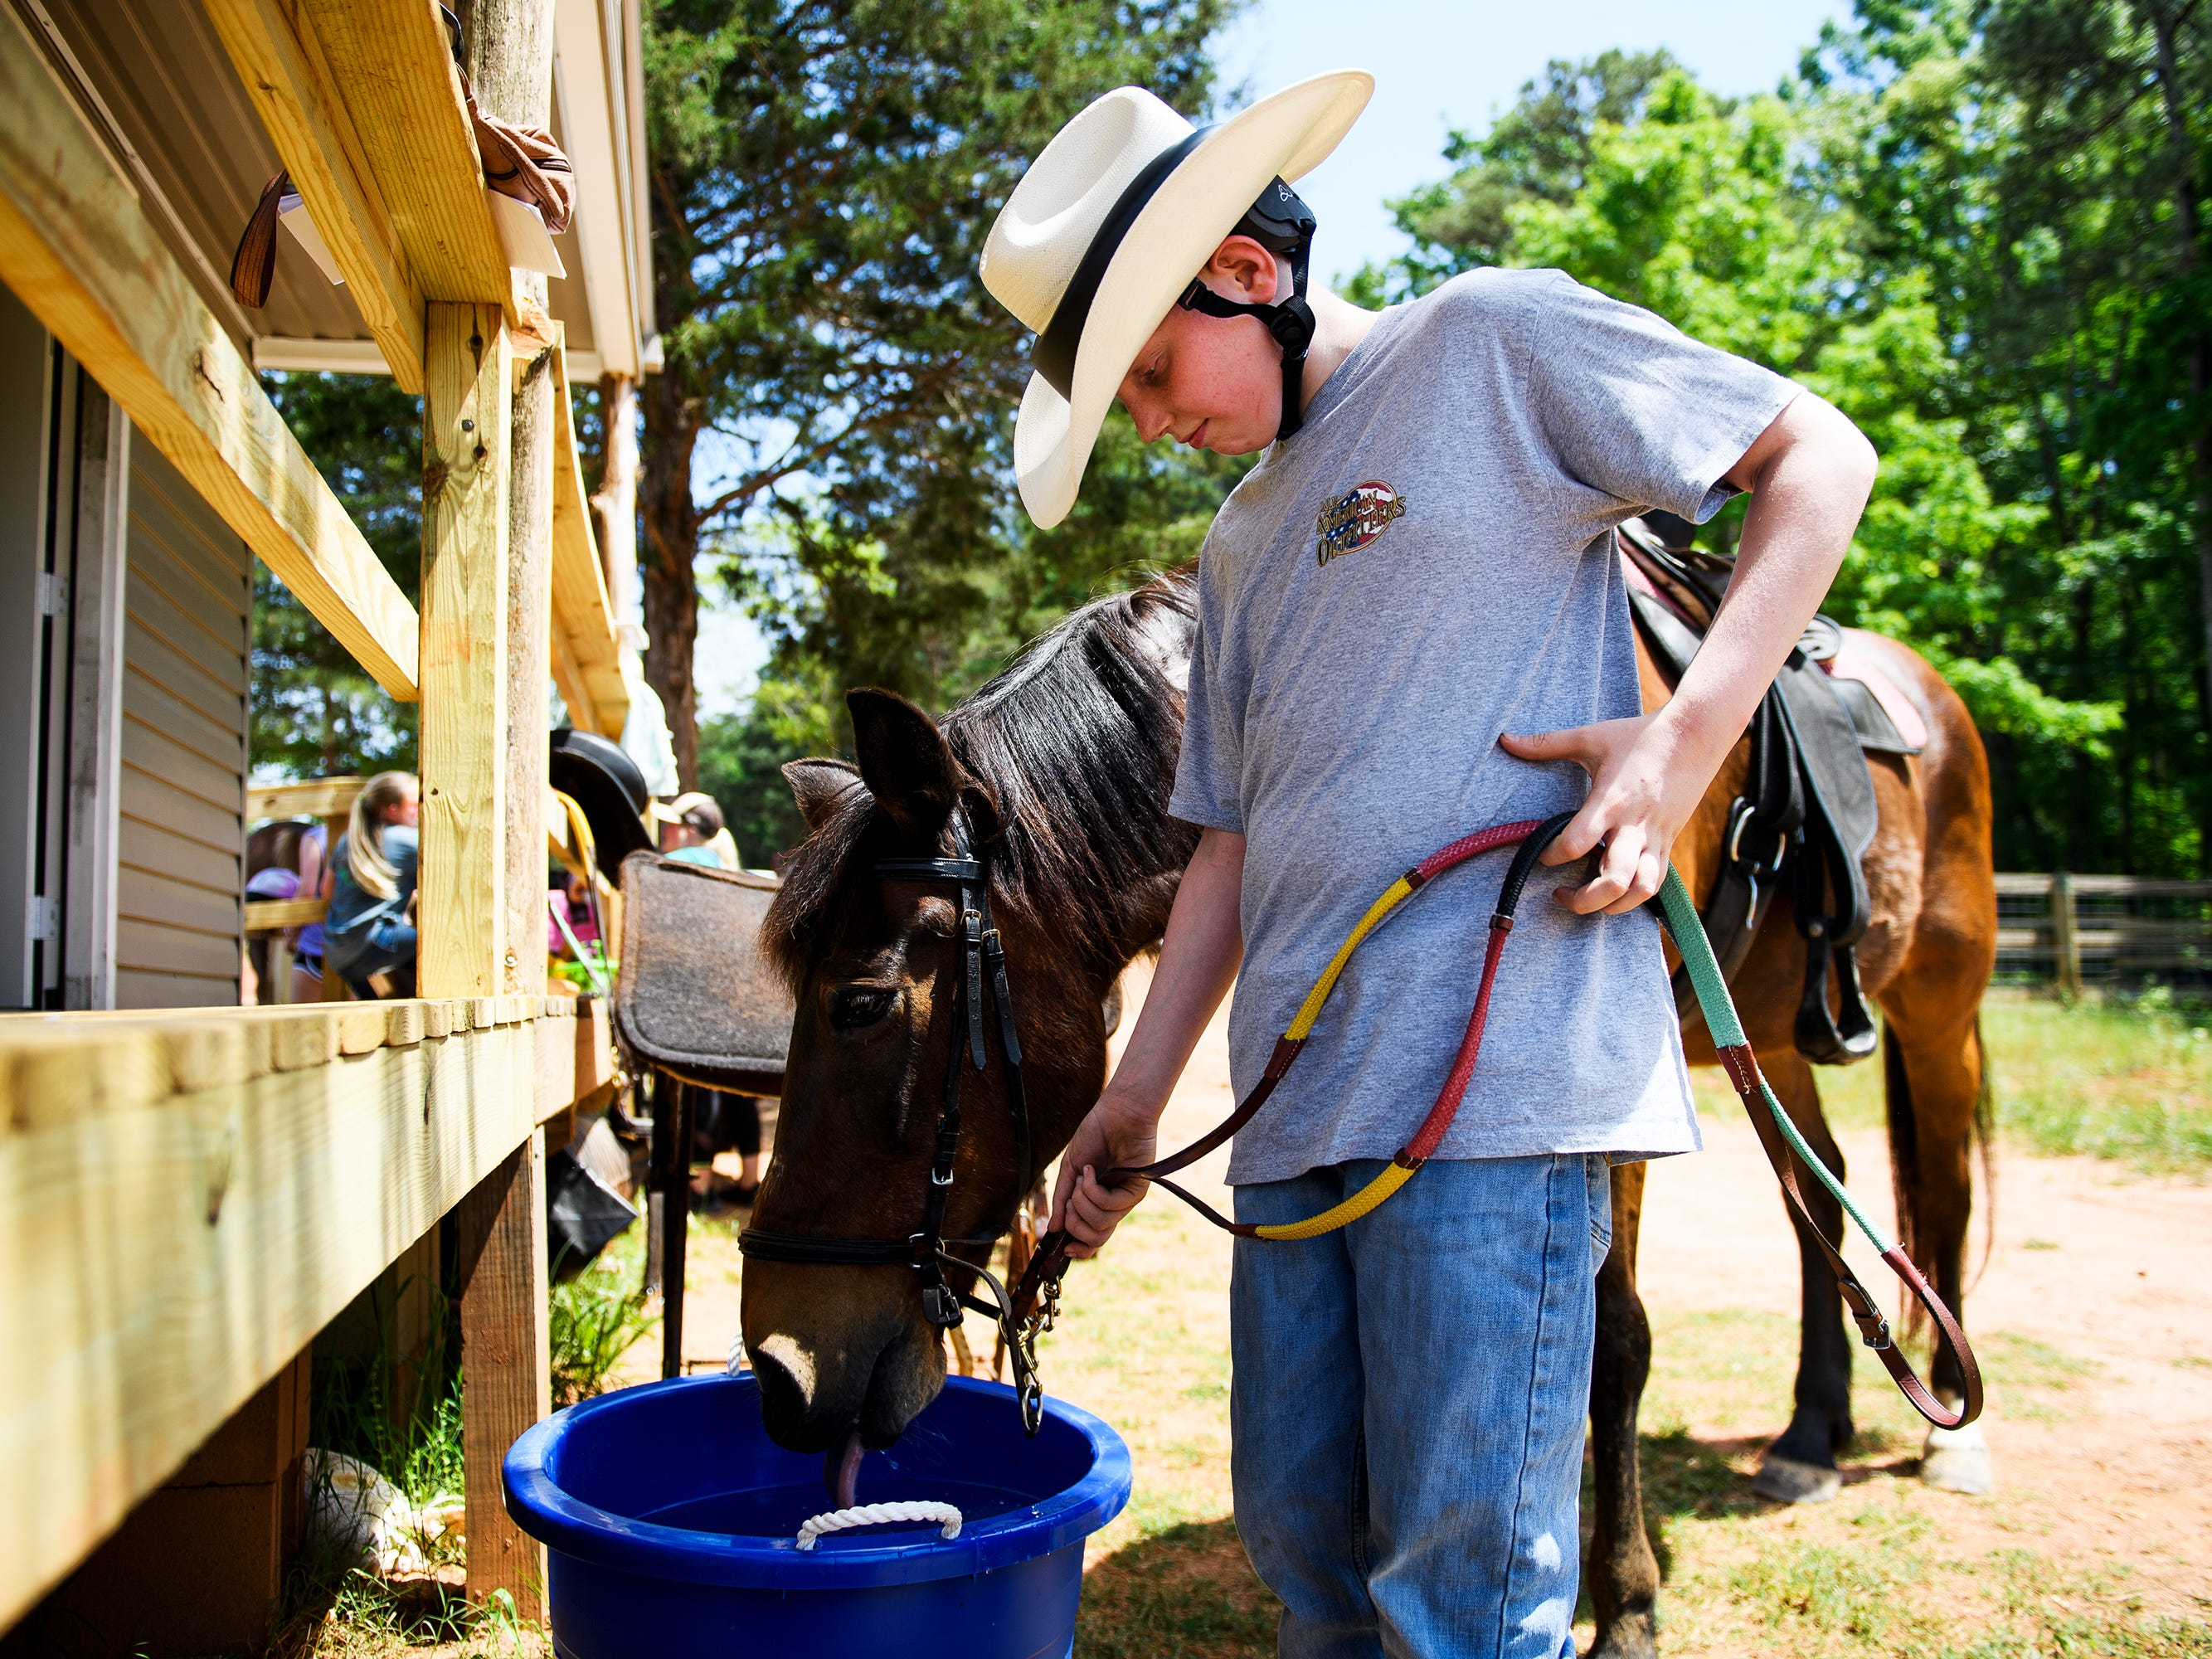 Logan Moore walks a horse to a drinking bucket during his riding lesson at J Rest Farm, Tuesday, April 30, 2019.